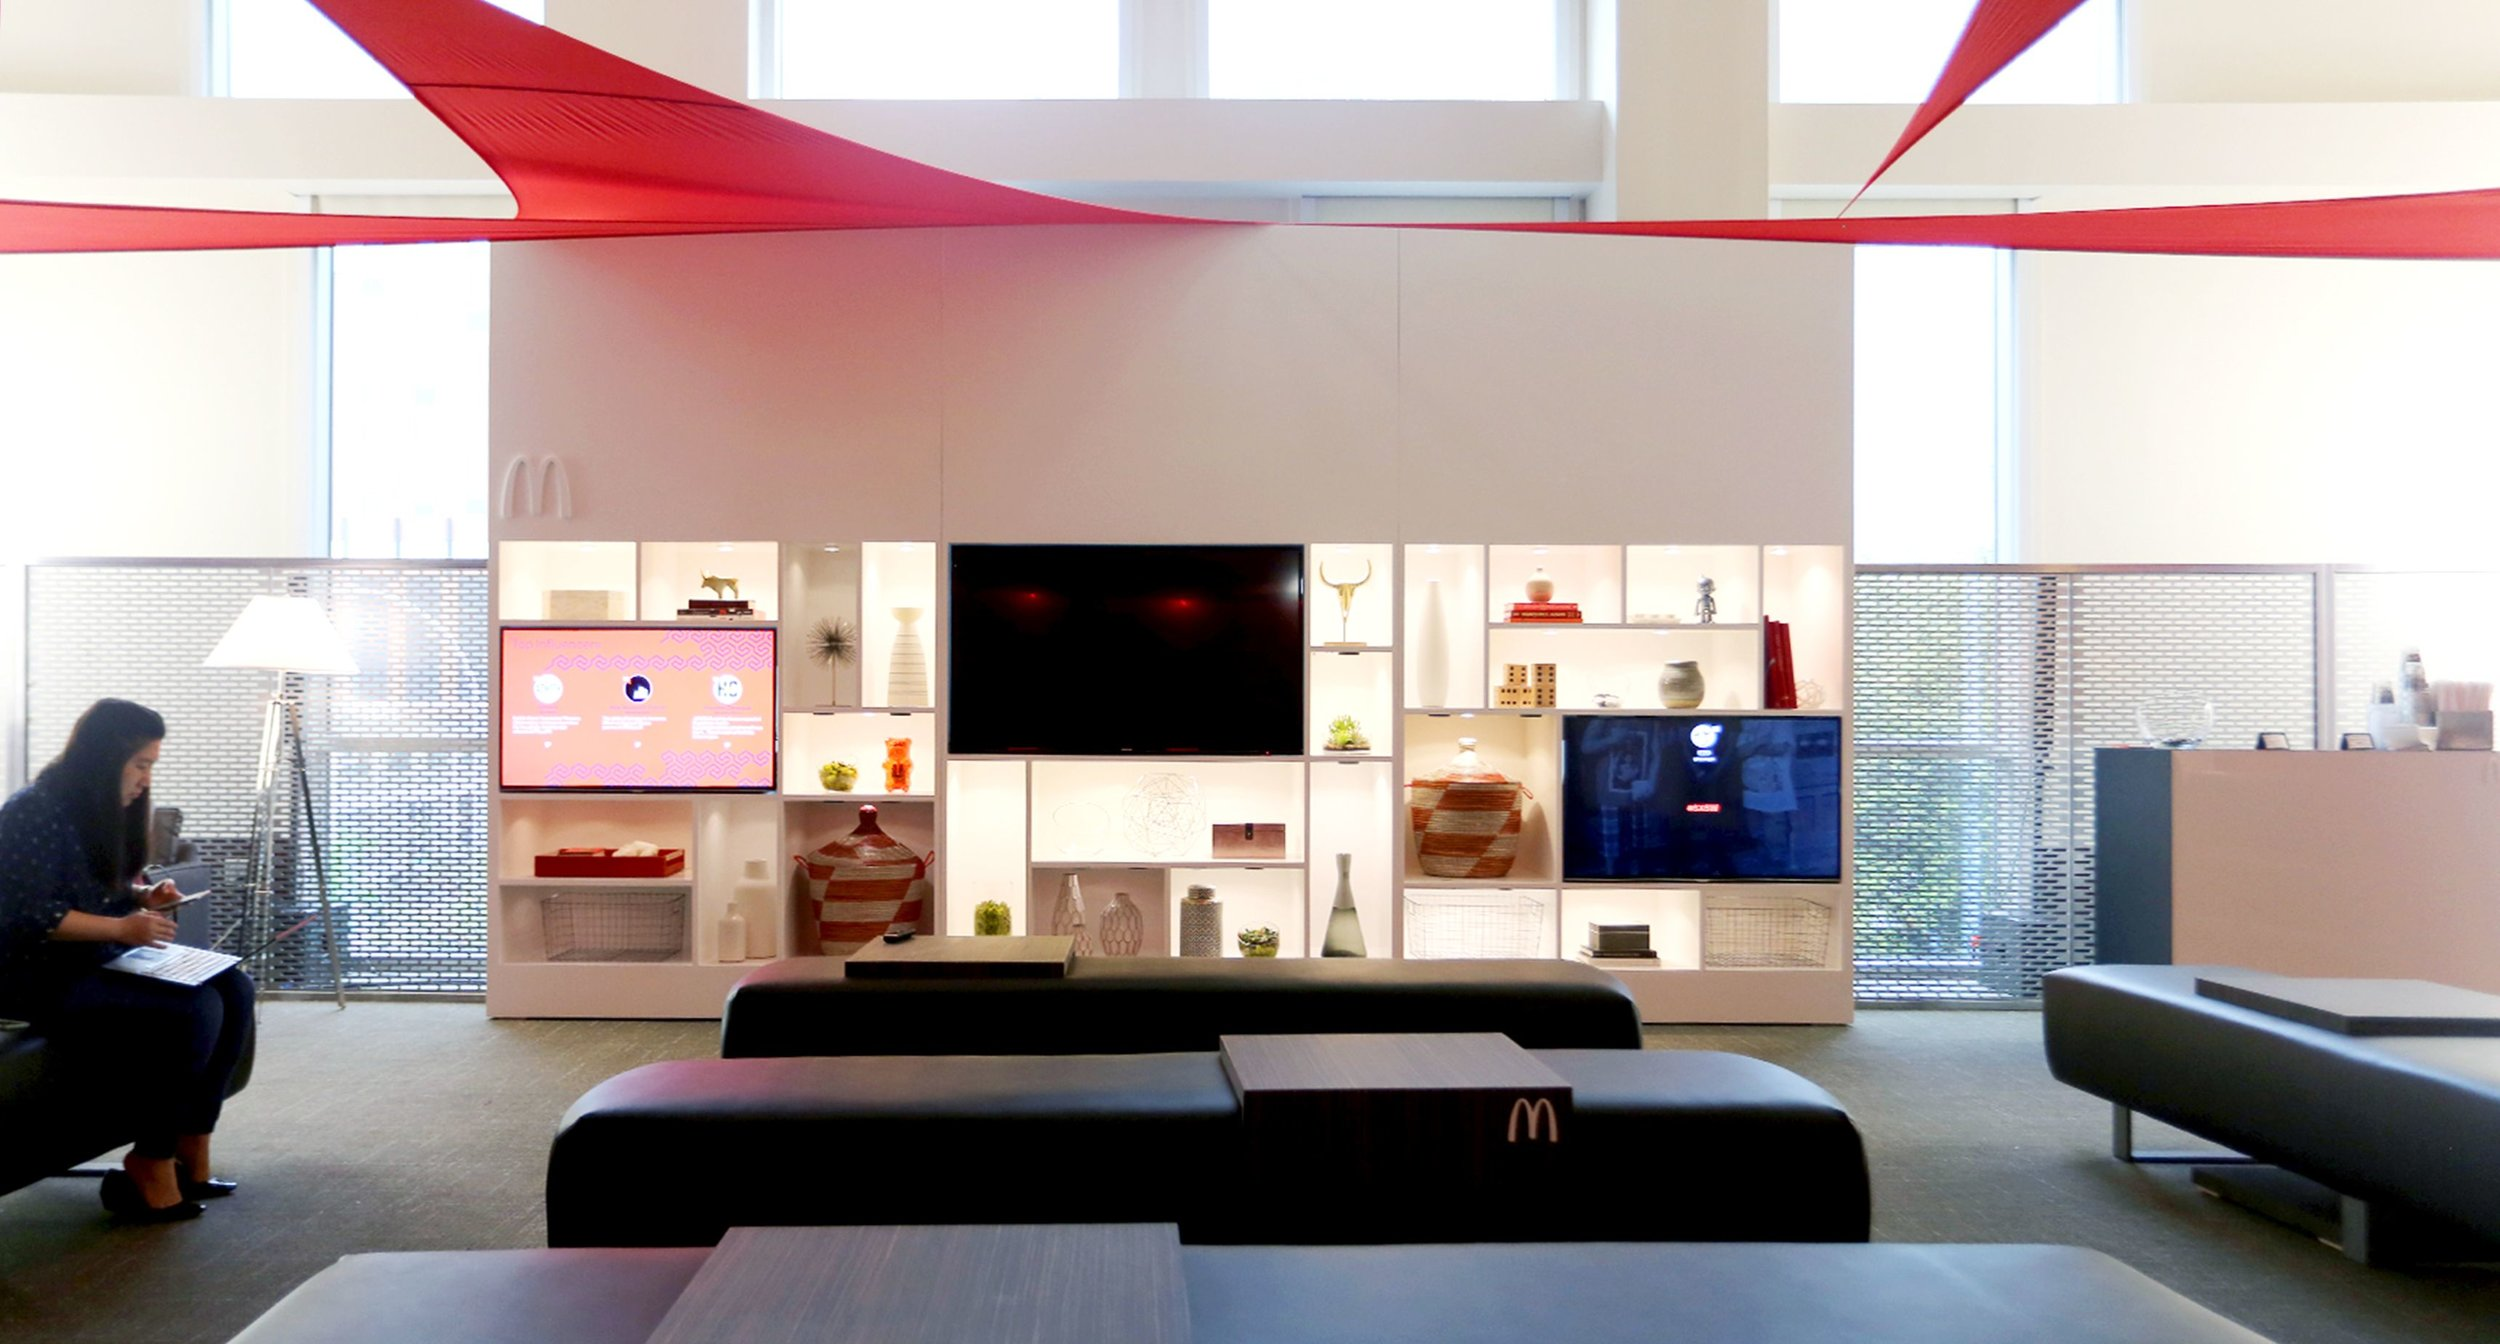 McDonald's Lounge with television and decorated shelves